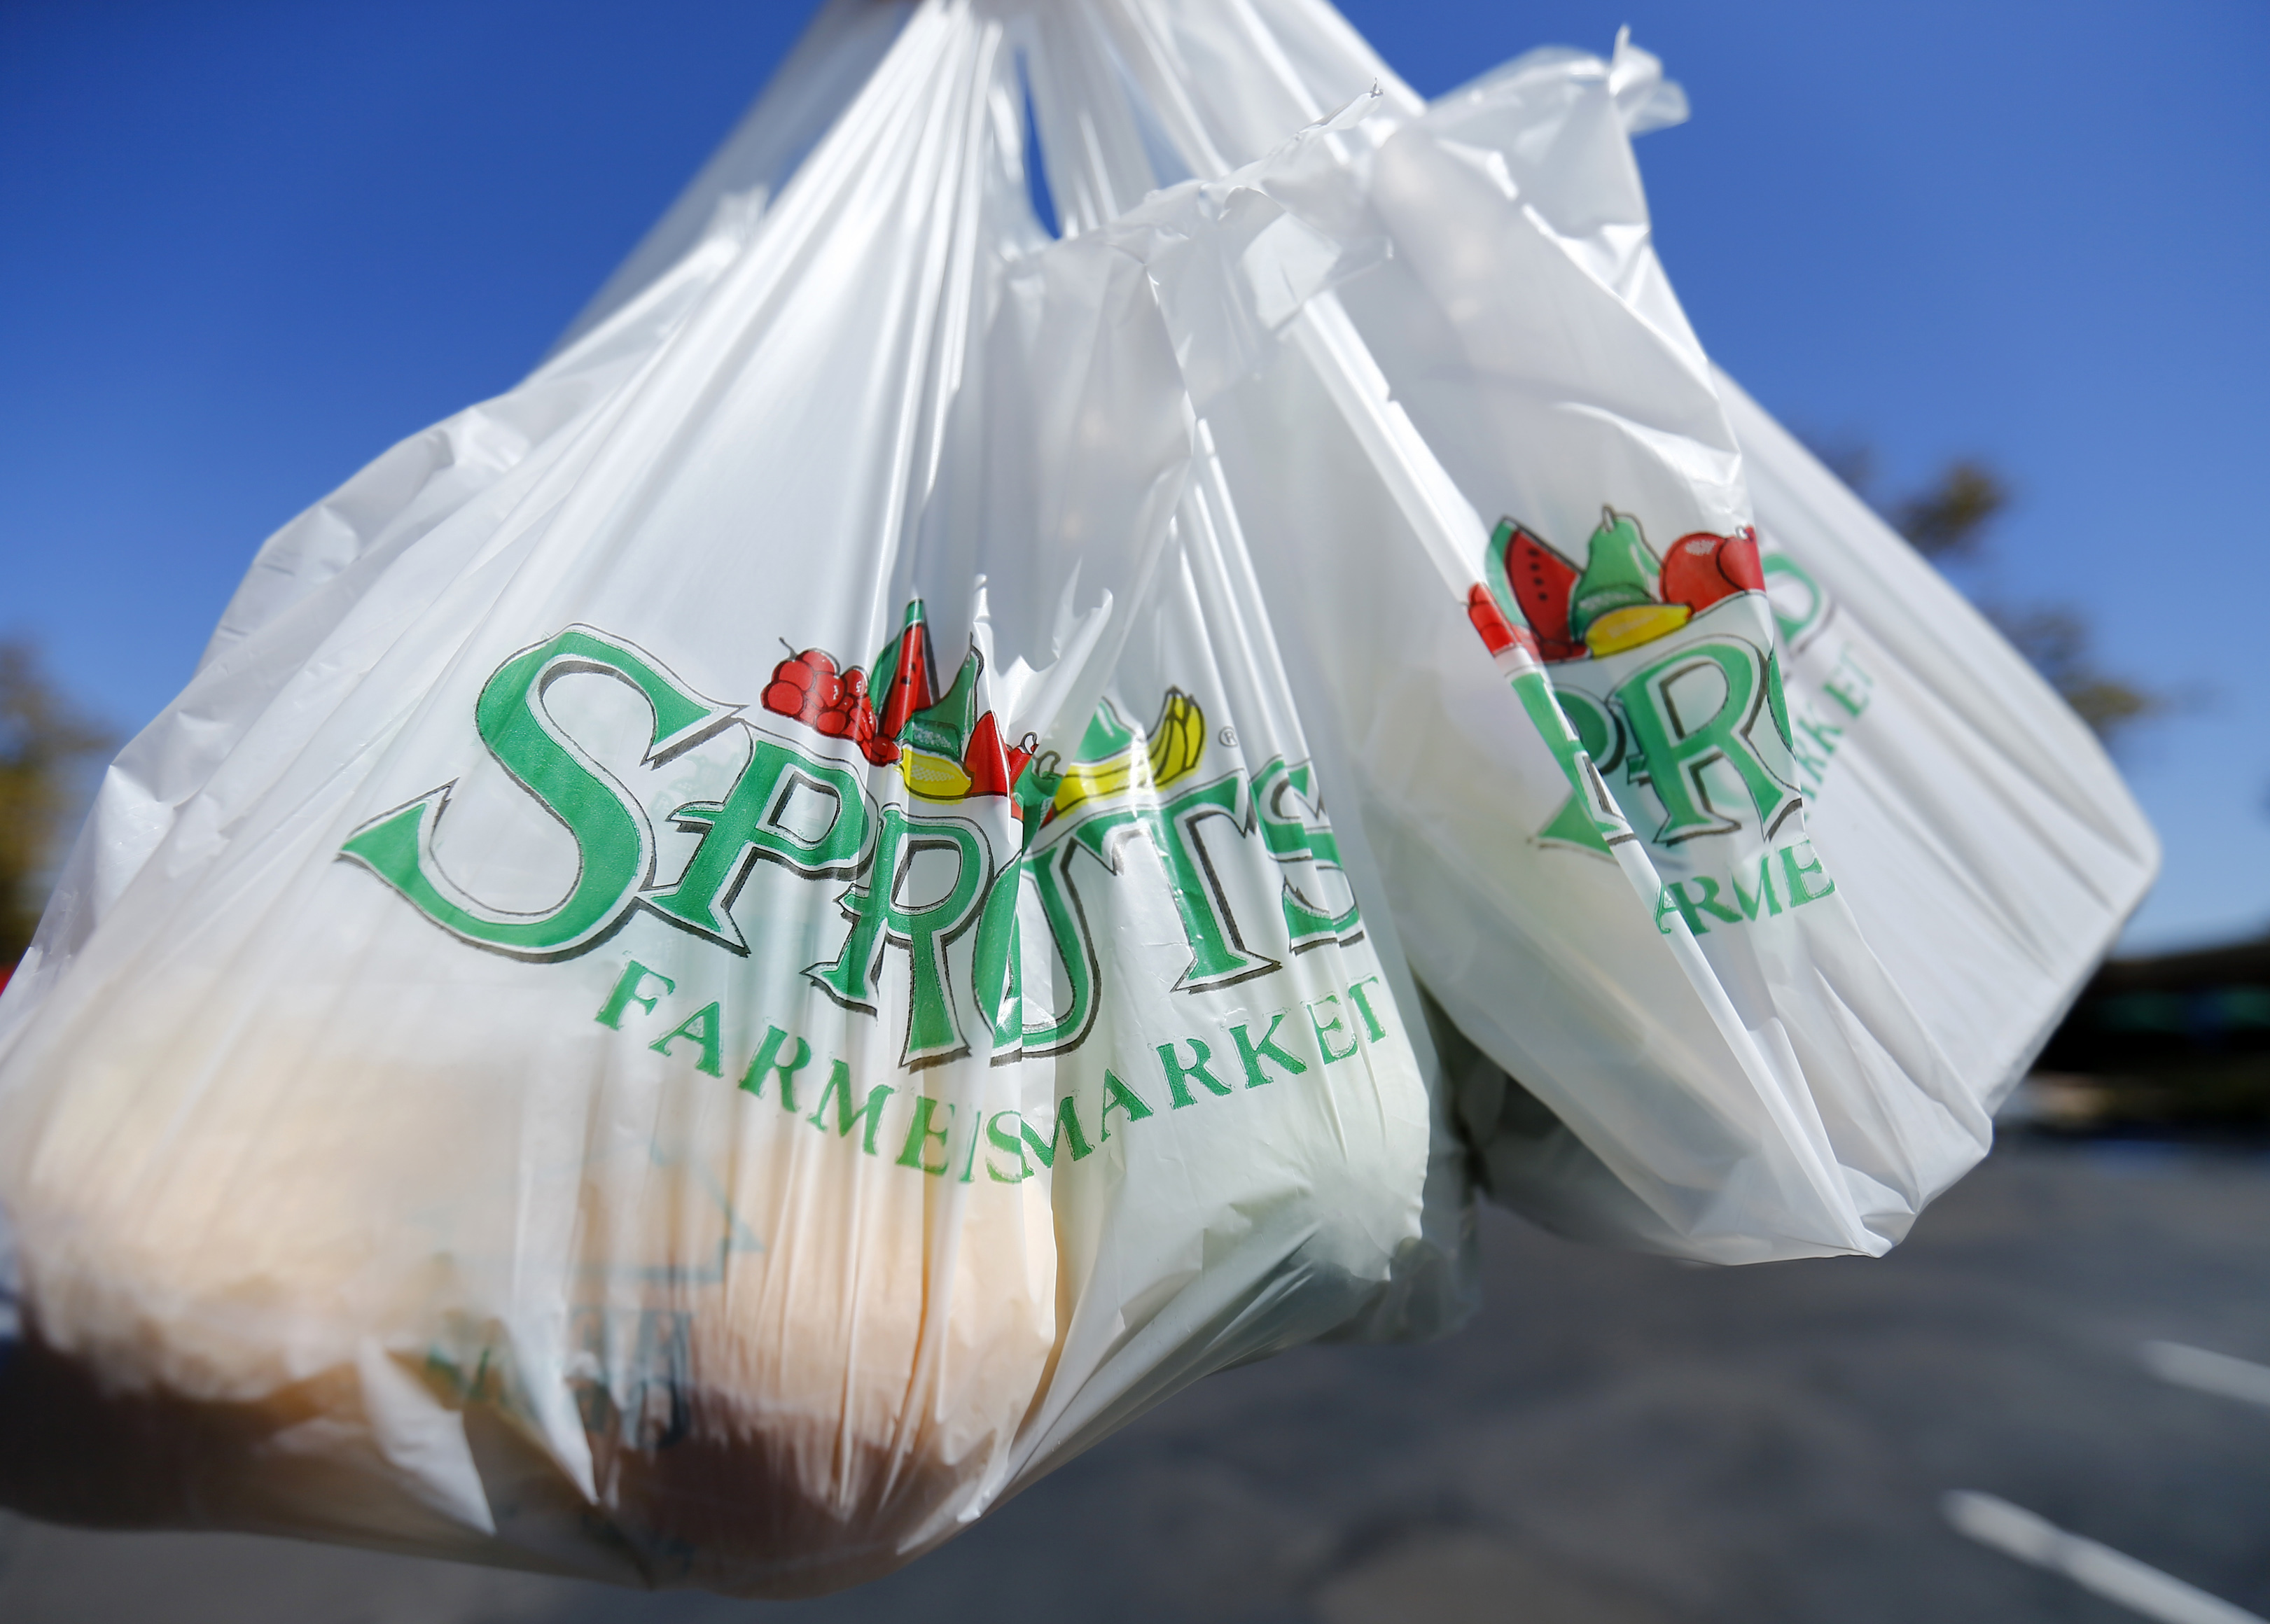 Two plastic grocery bags being held .